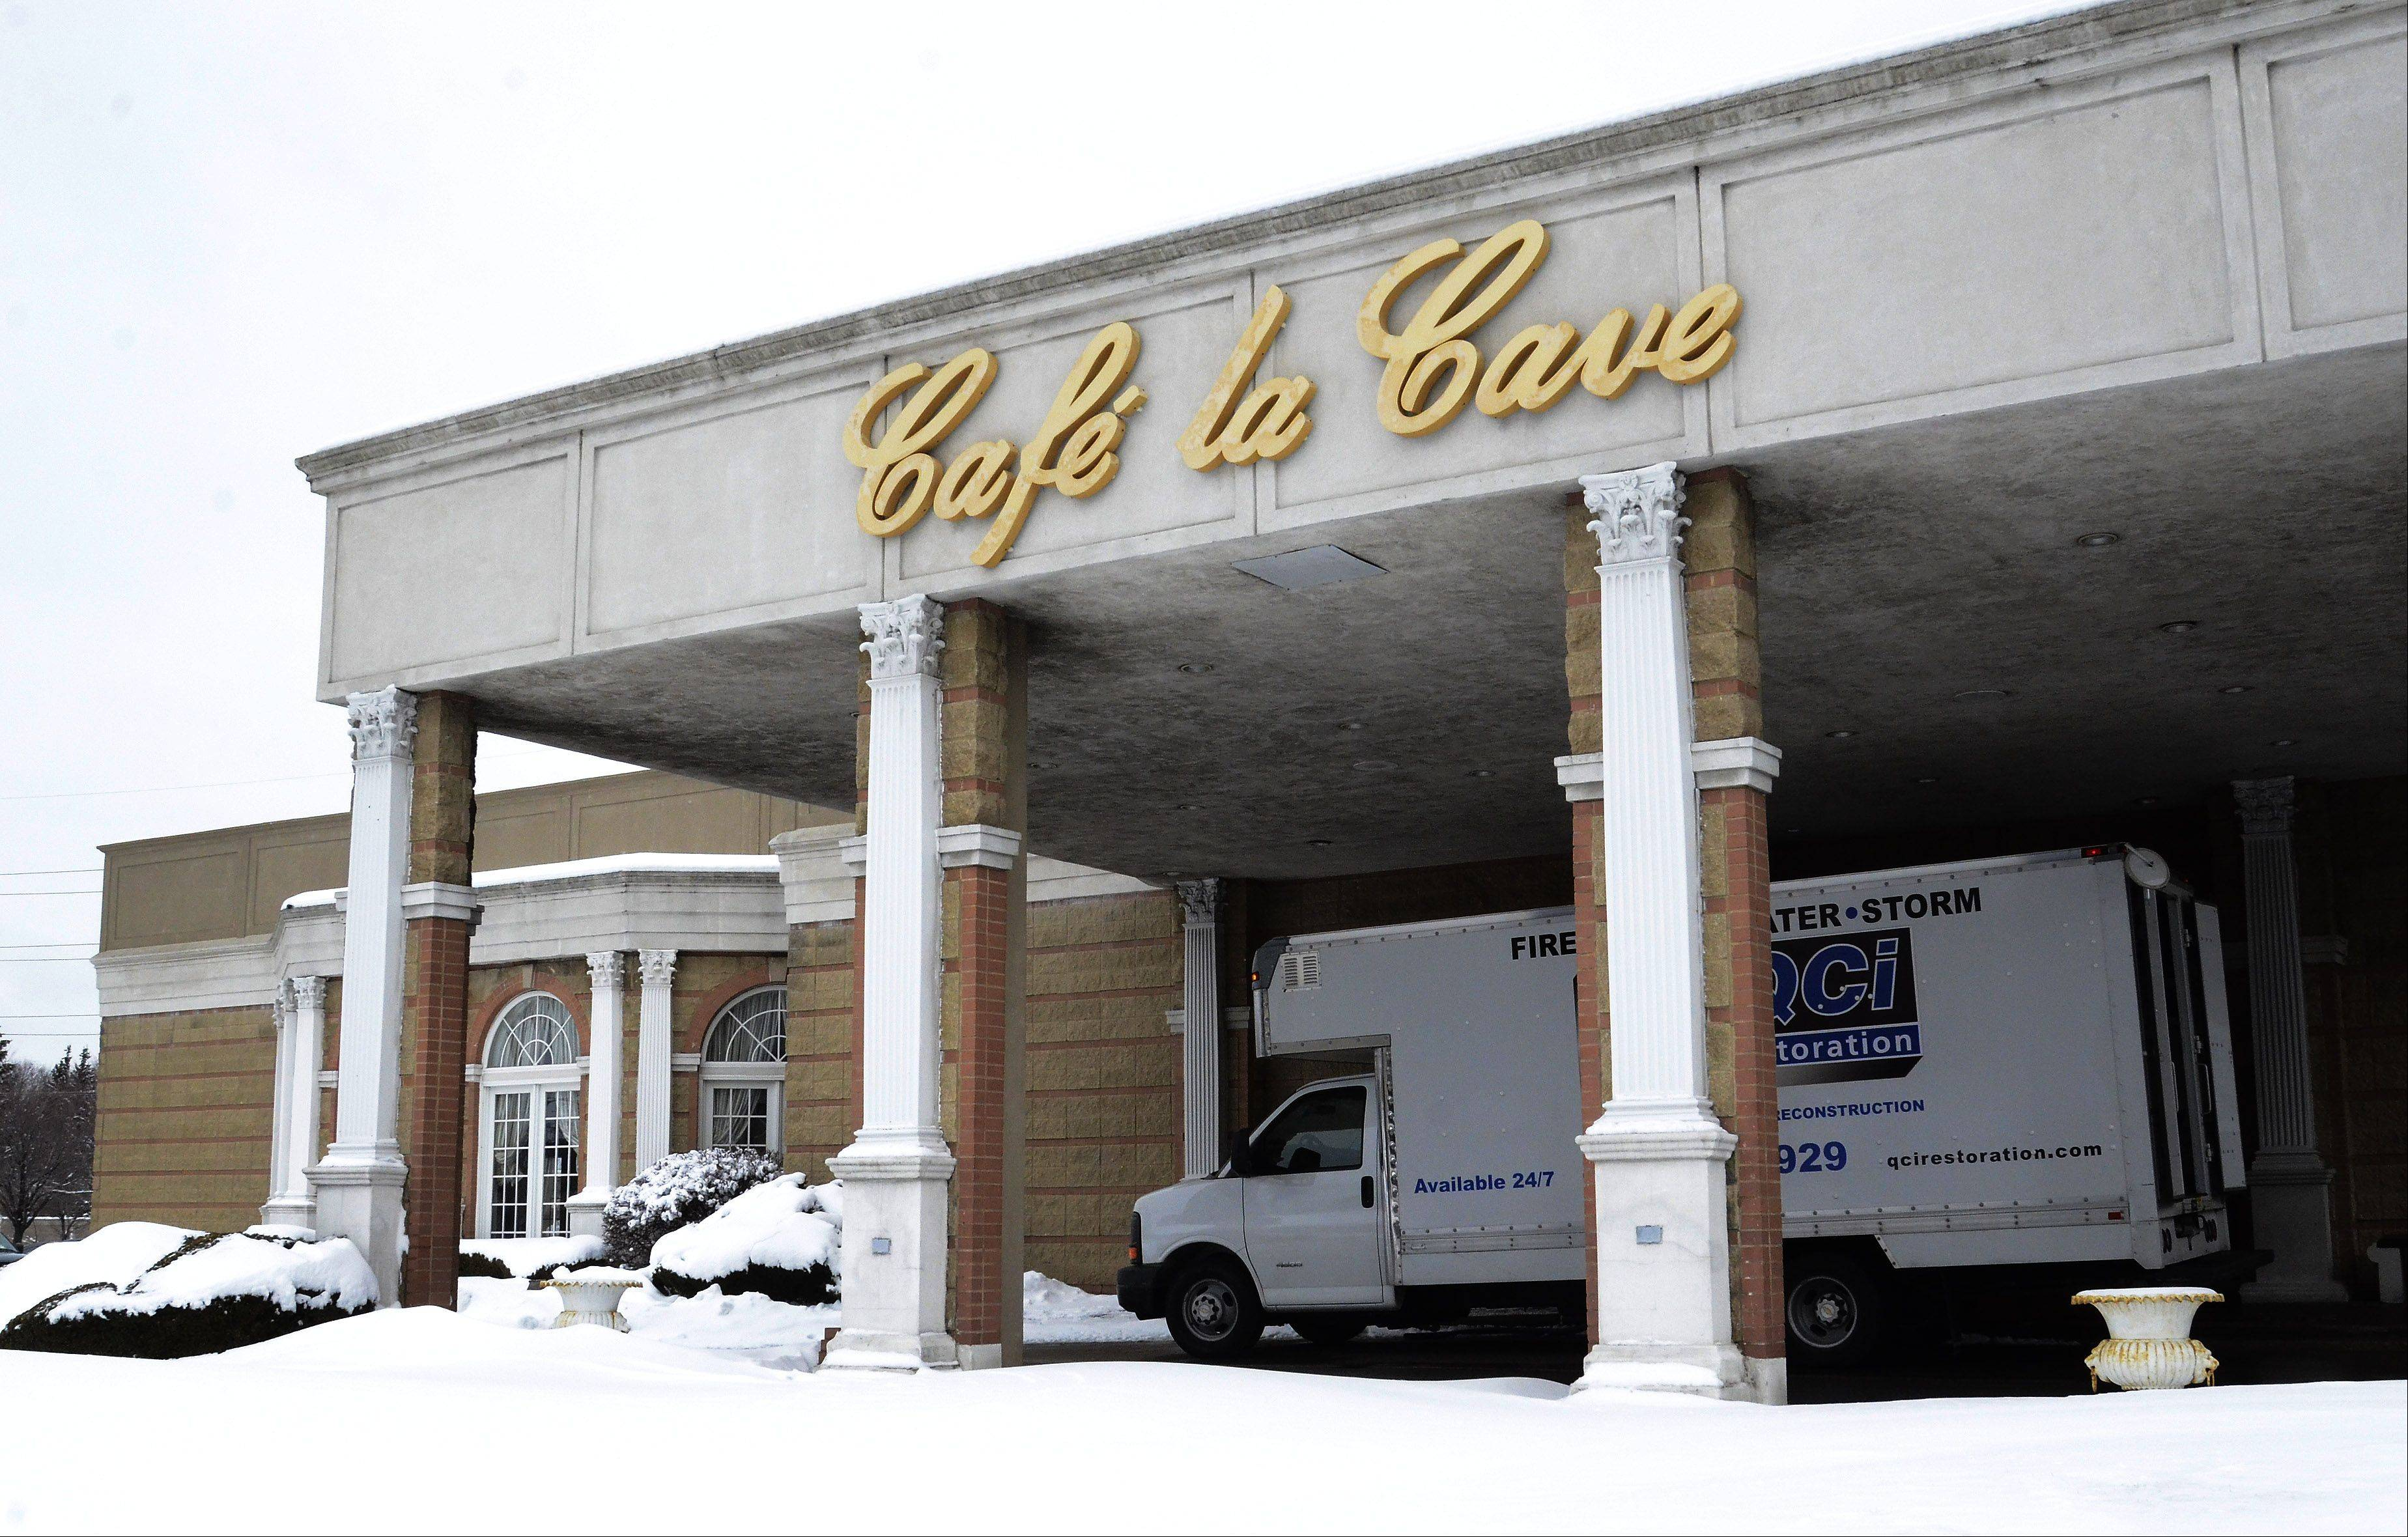 Authorities suspect a buildup of snow from Tuesday's winter storm caused the roof to collapse over a portion of Cafe la Cave in Des Plaines. The collapse destroyed one ballroom and damaged other portions of the banquet hall and restaurant.